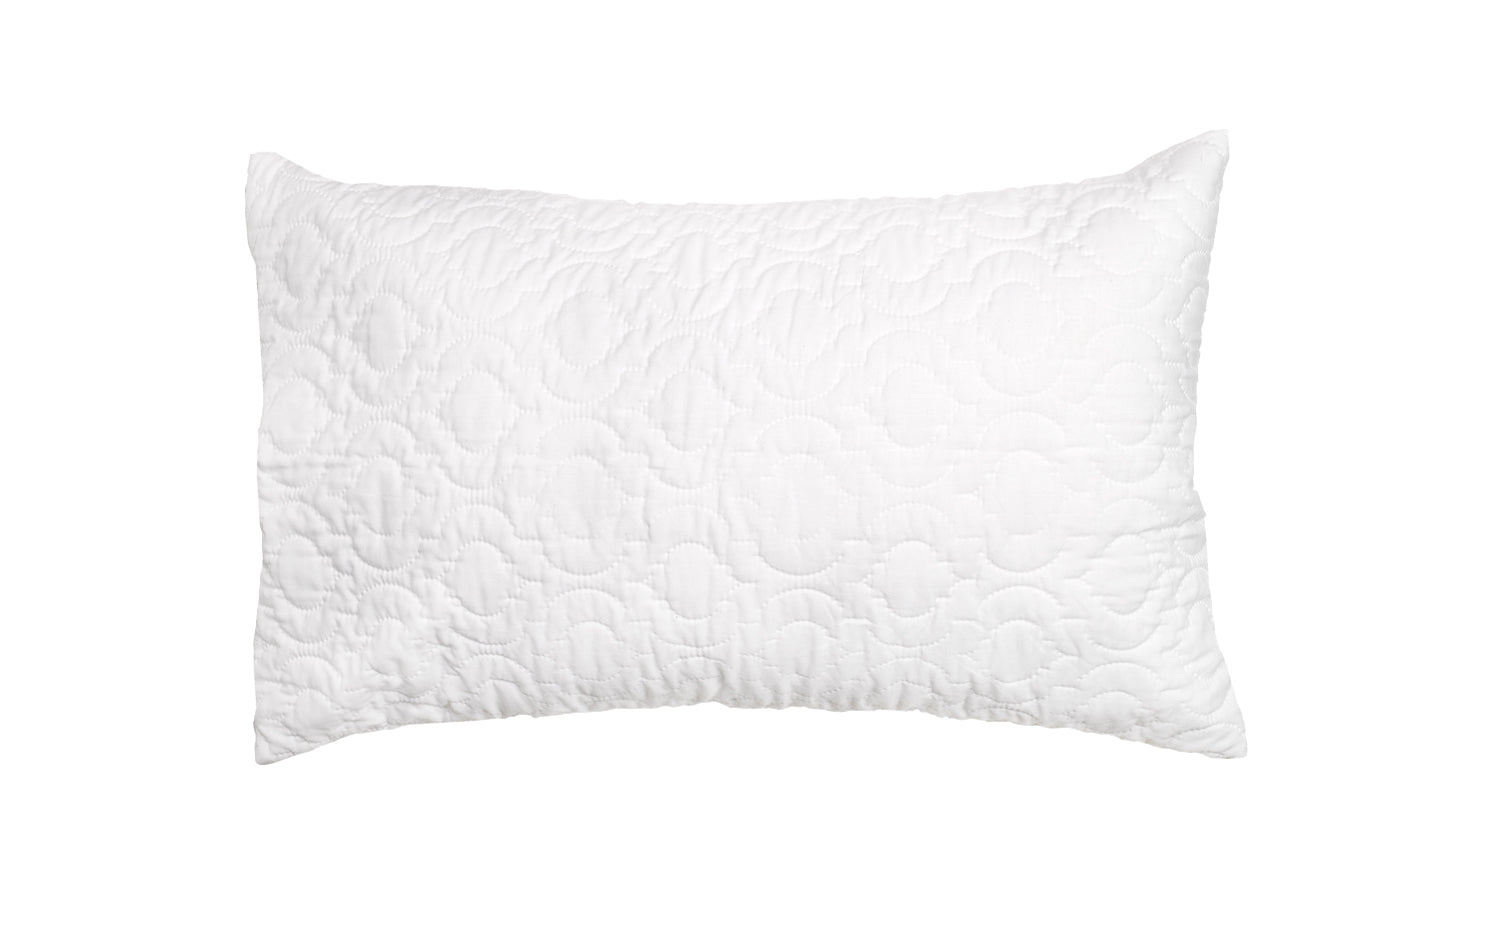 2x Quilted Pillow Protectors